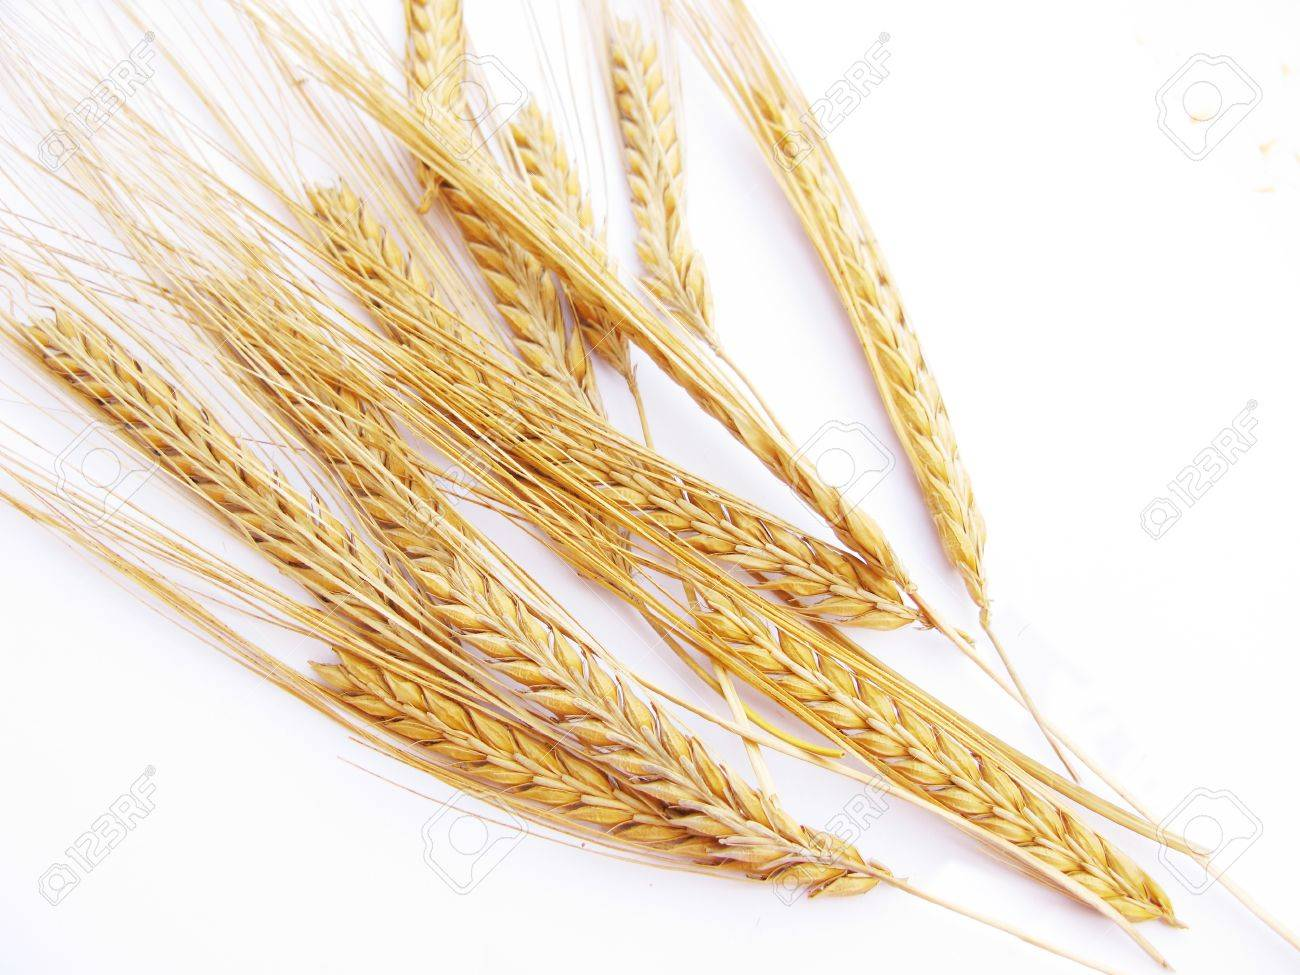 Wheat stalks isolated in white background Stock Photo - 10417025